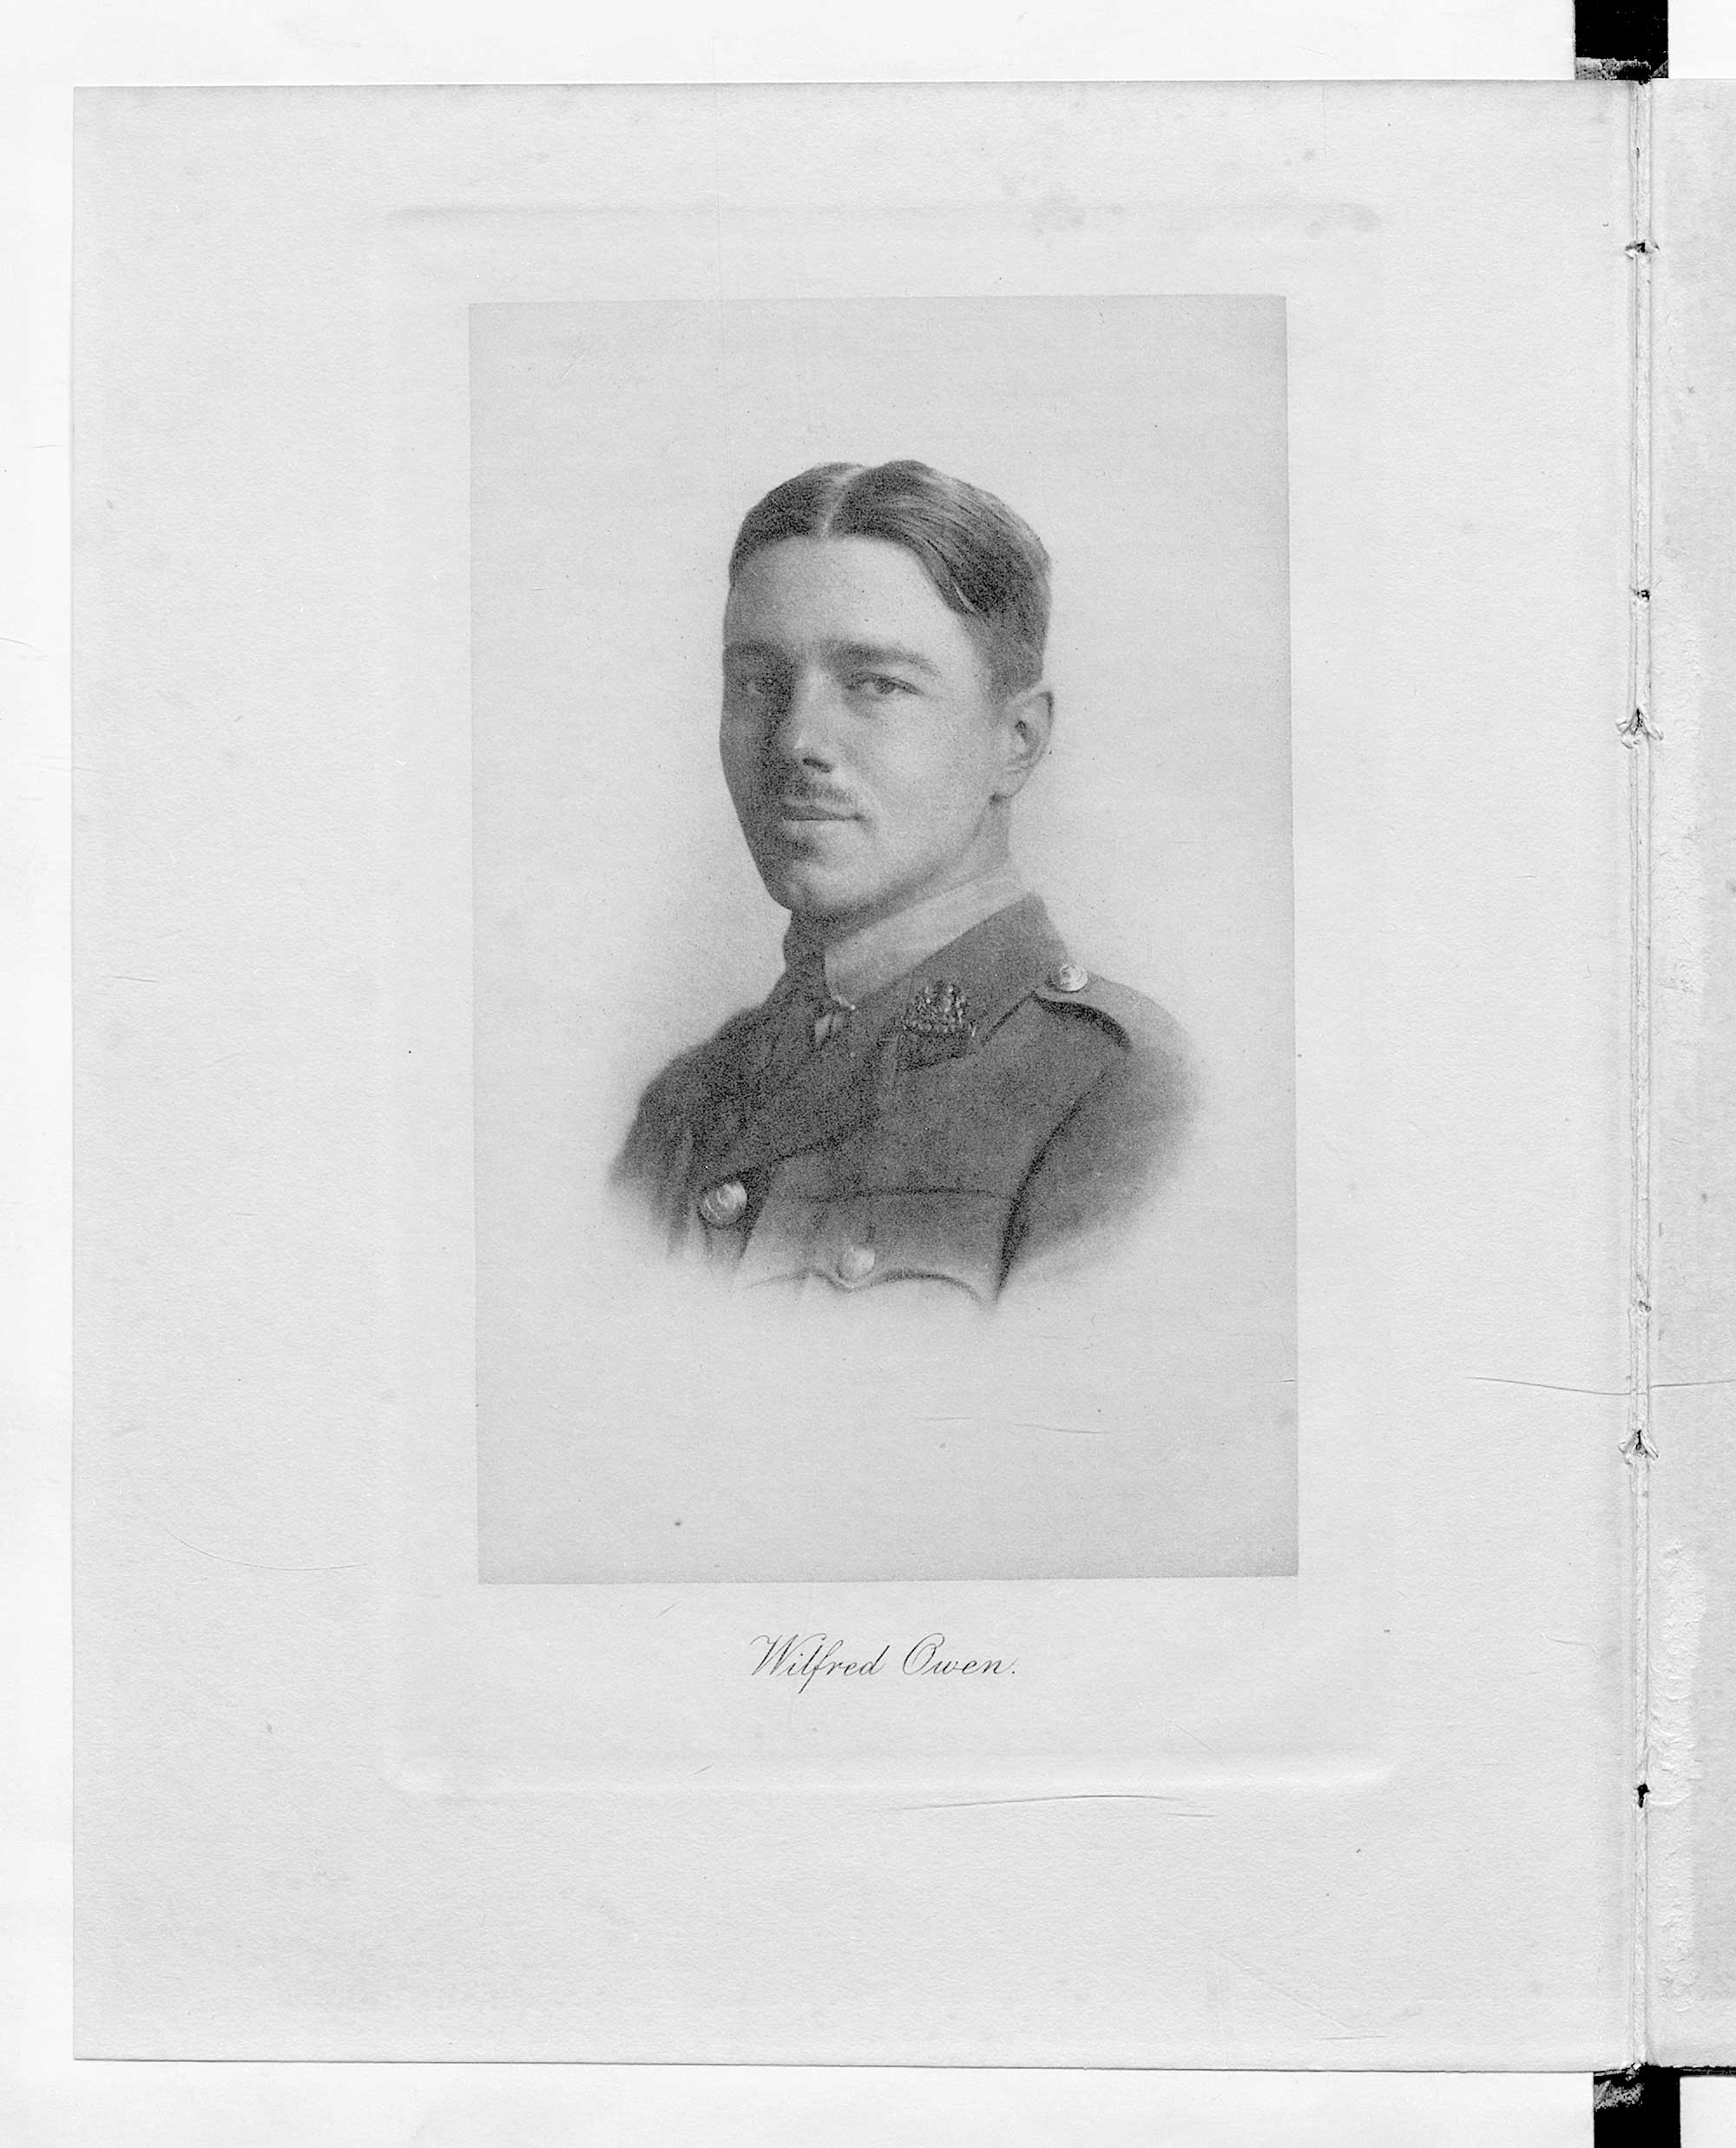 Published in 1920, Poems contains Wilfred Owen's best known works.